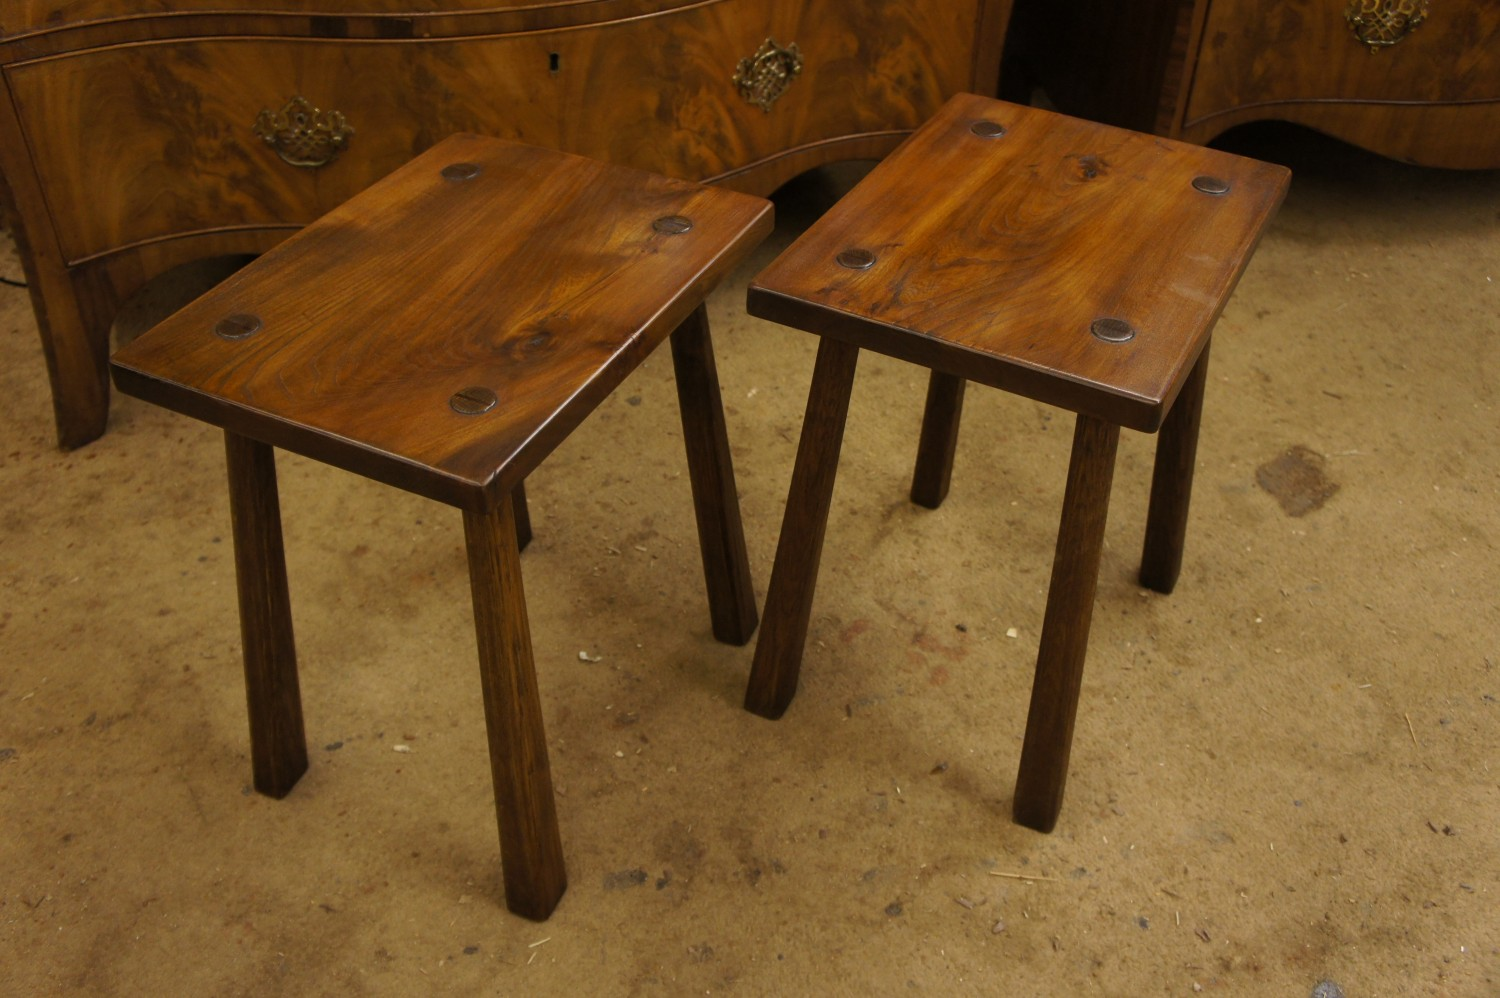 Stool-country-stools